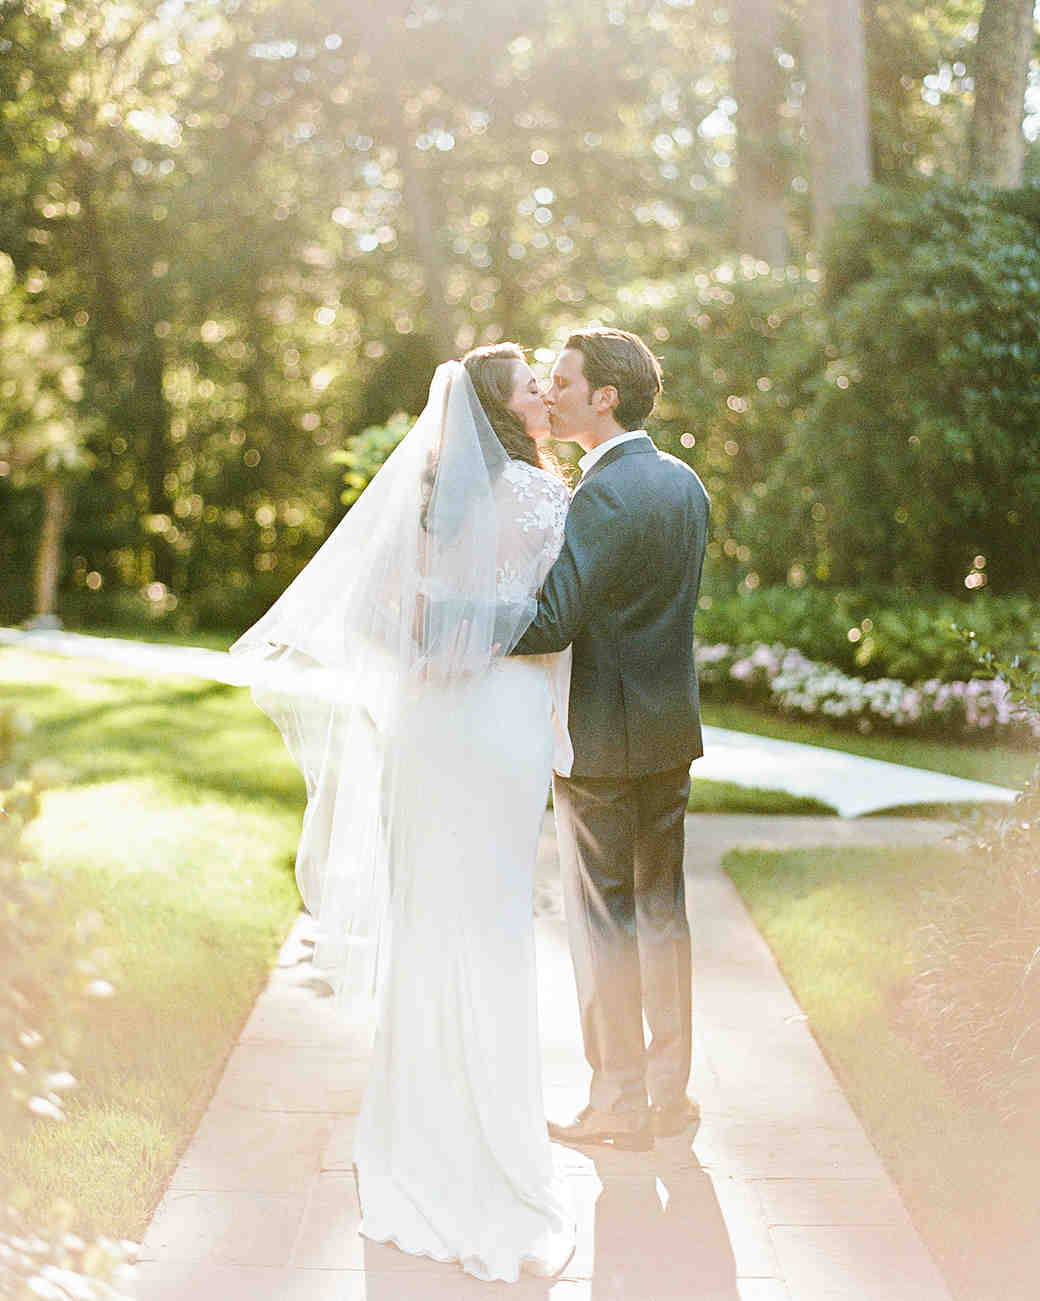 melissa michael bride groom kiss